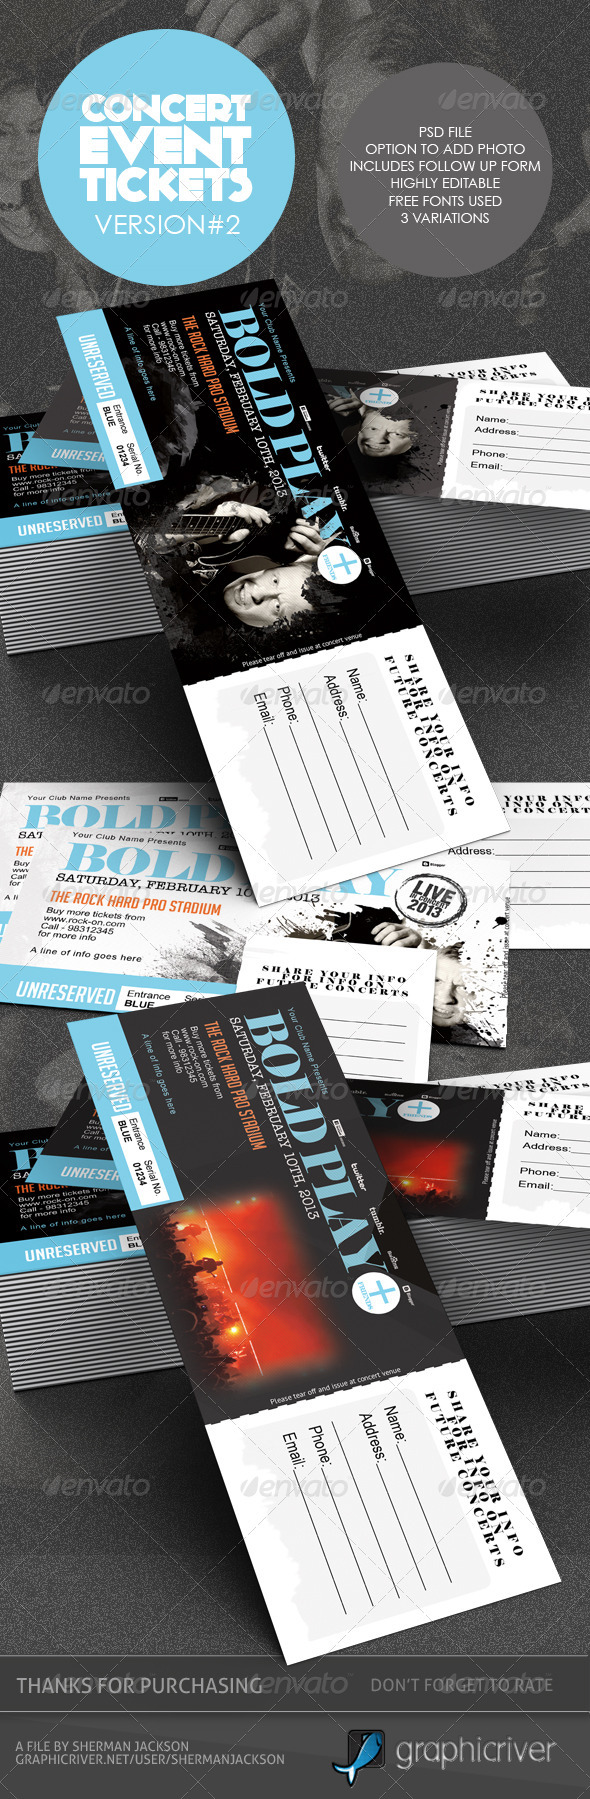 Hard Rock Cafe Graphics Designs Templates From GraphicRiver - Event ticket template photoshop